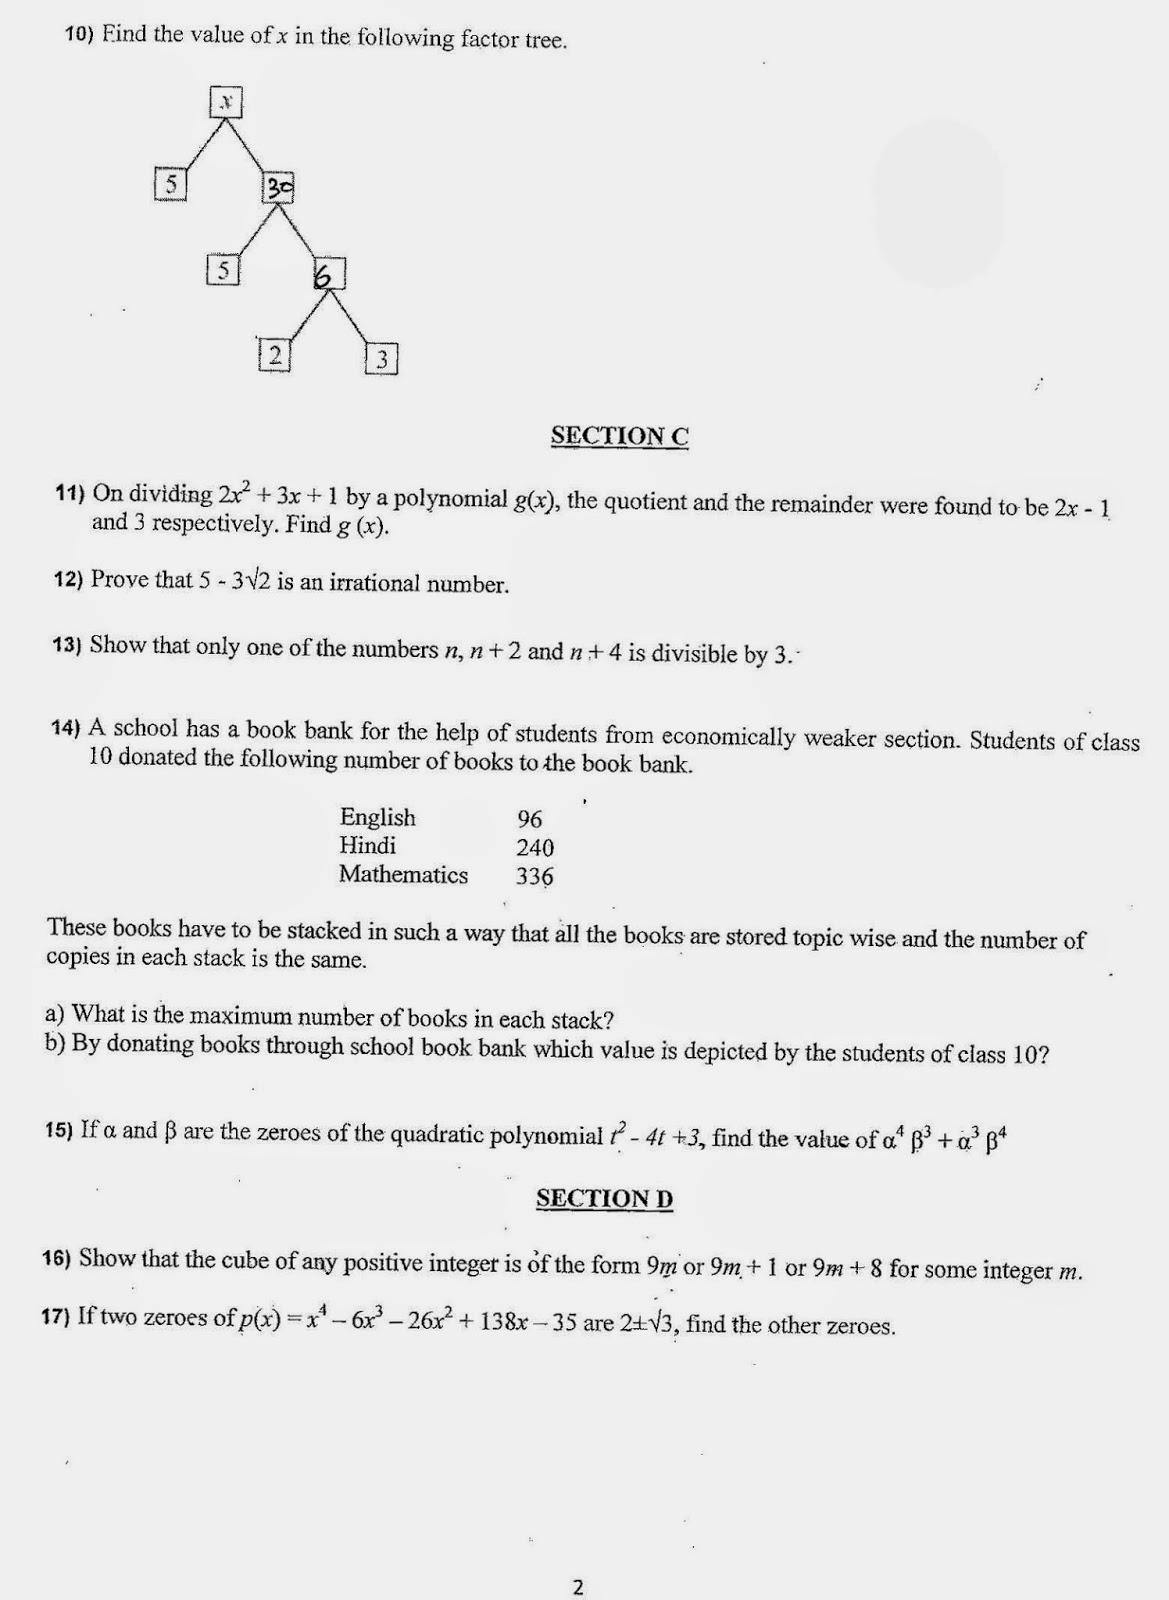 Maths4all class x mathematics blue bells international school class x mathematics blue bells international school question paper fa 1 2015 16 malvernweather Images